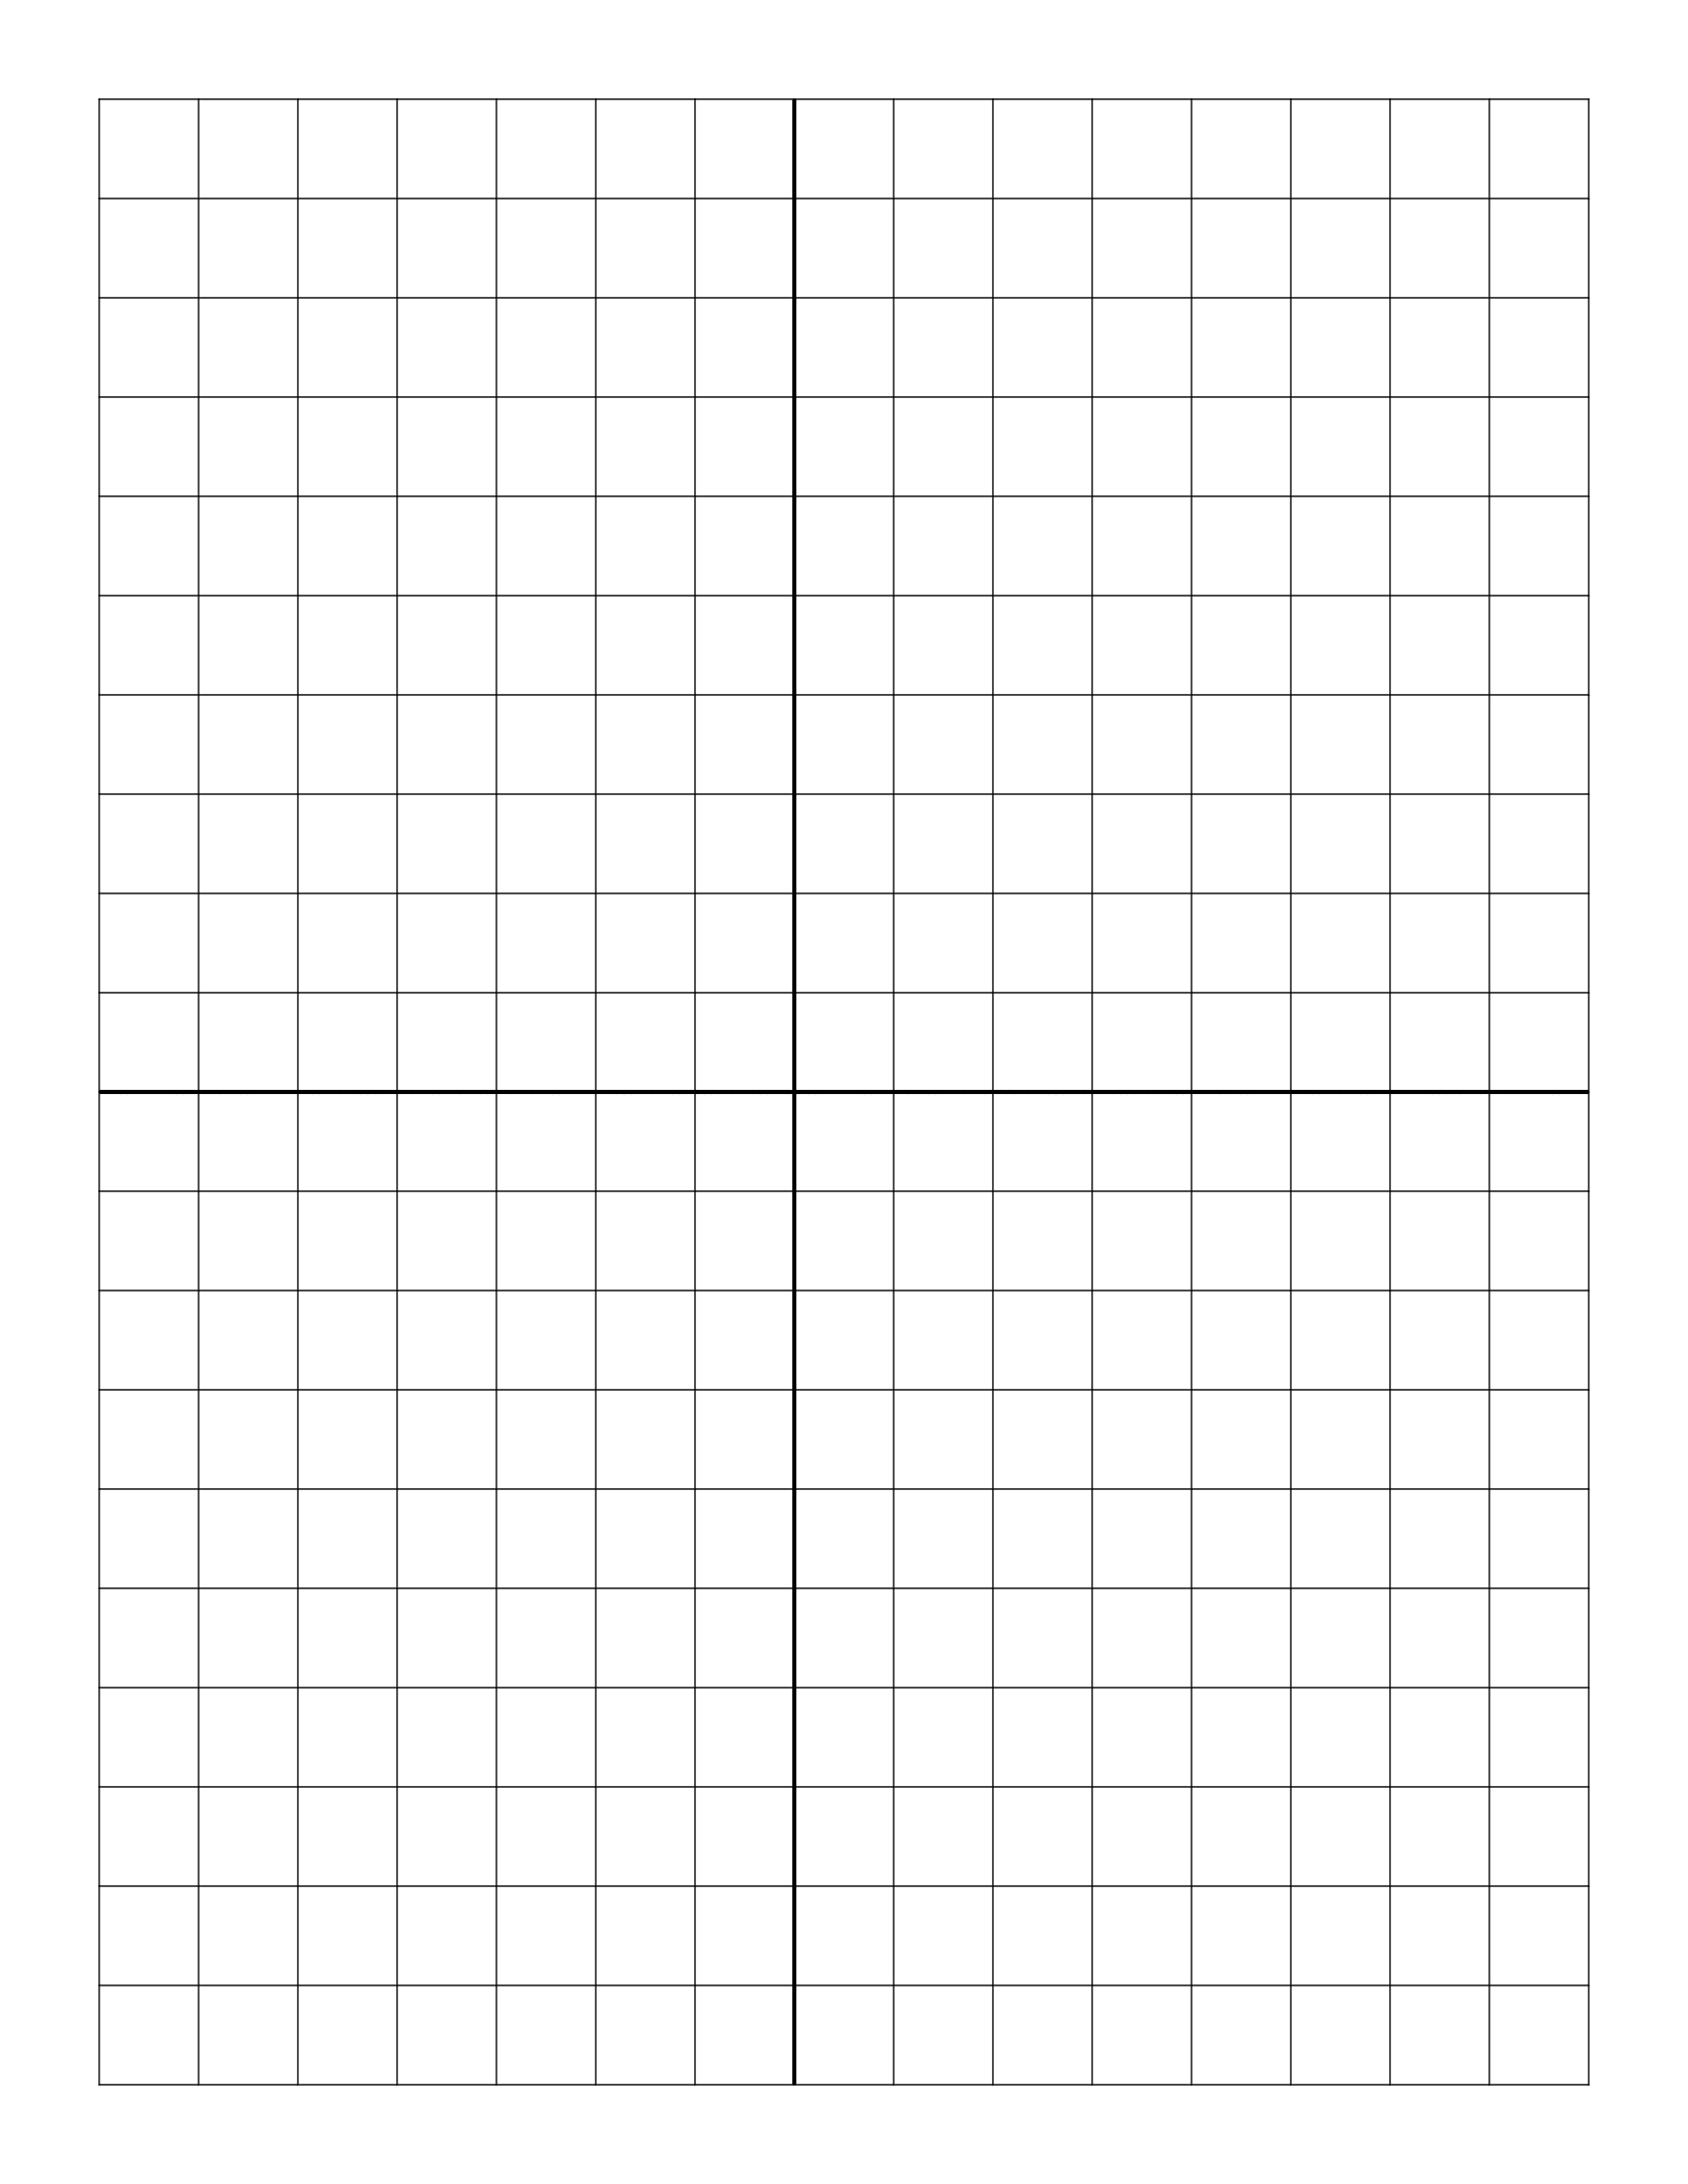 Printable Grid Paper with Axis